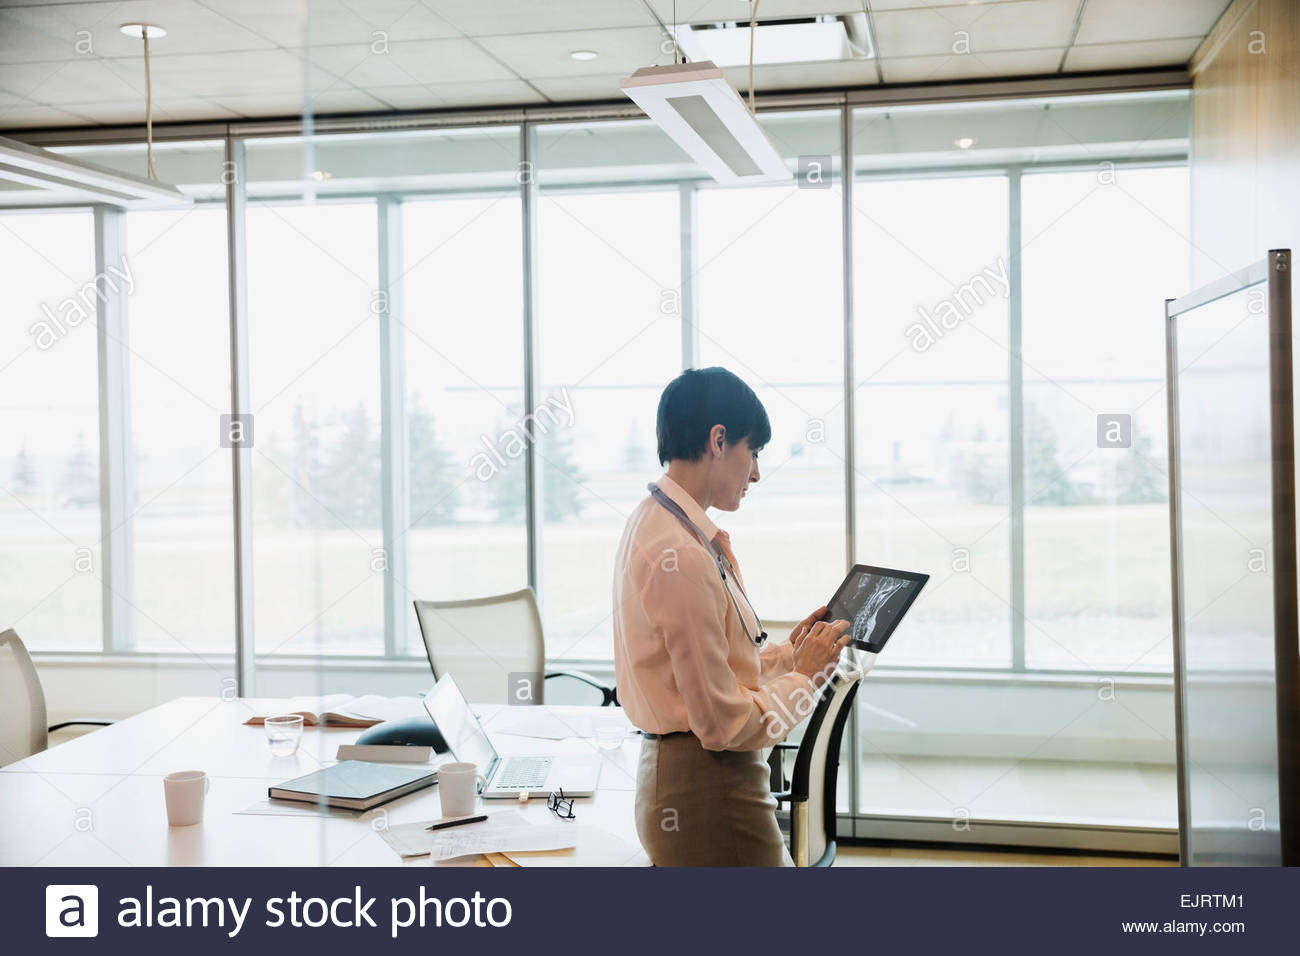 Doctor examining x-rays on digital tablet - Stock Image